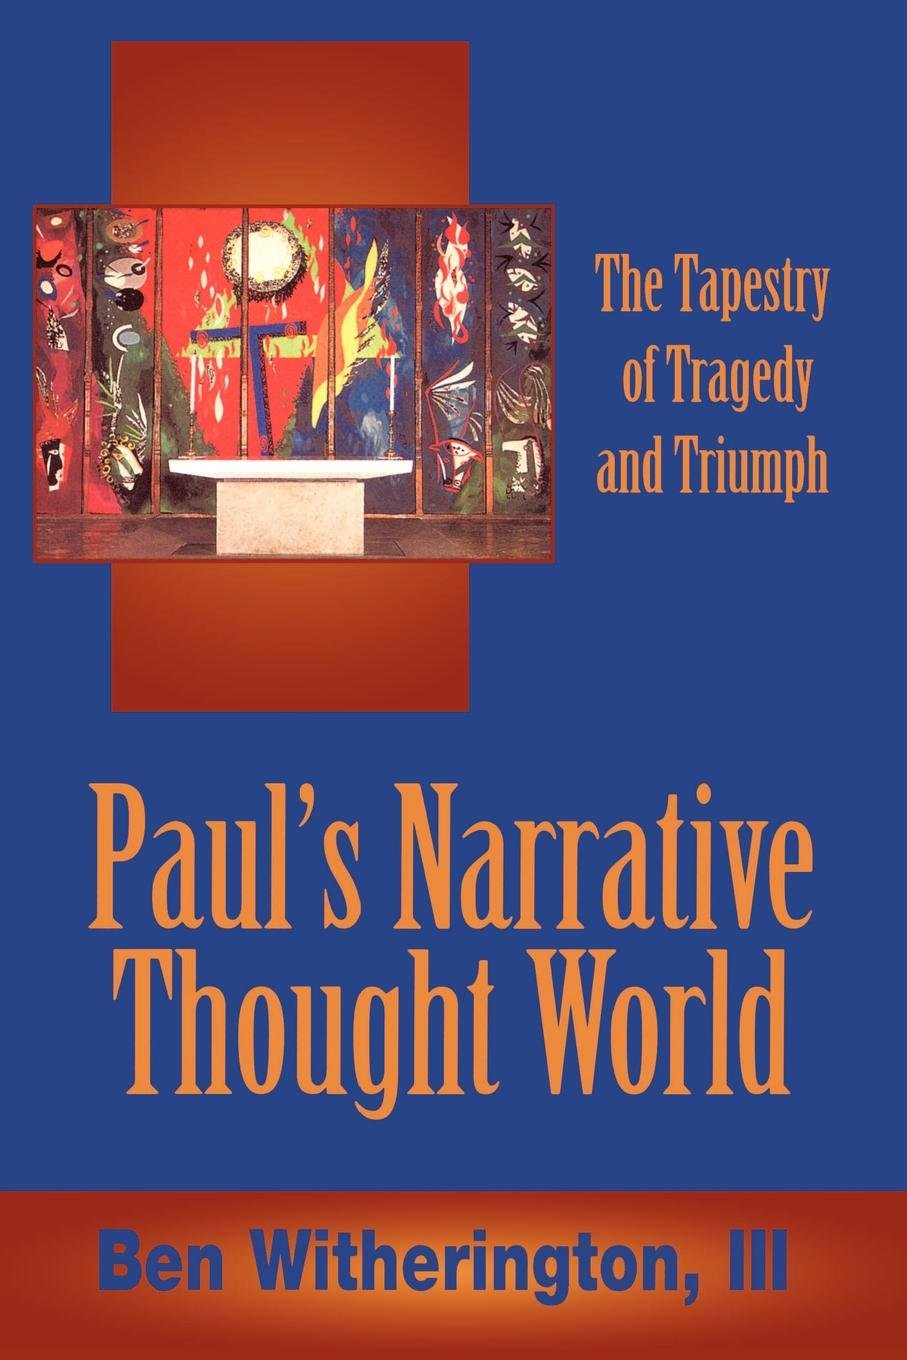 Paul's Narrative Thought World: The Tapestry of Tragedy and Triumph